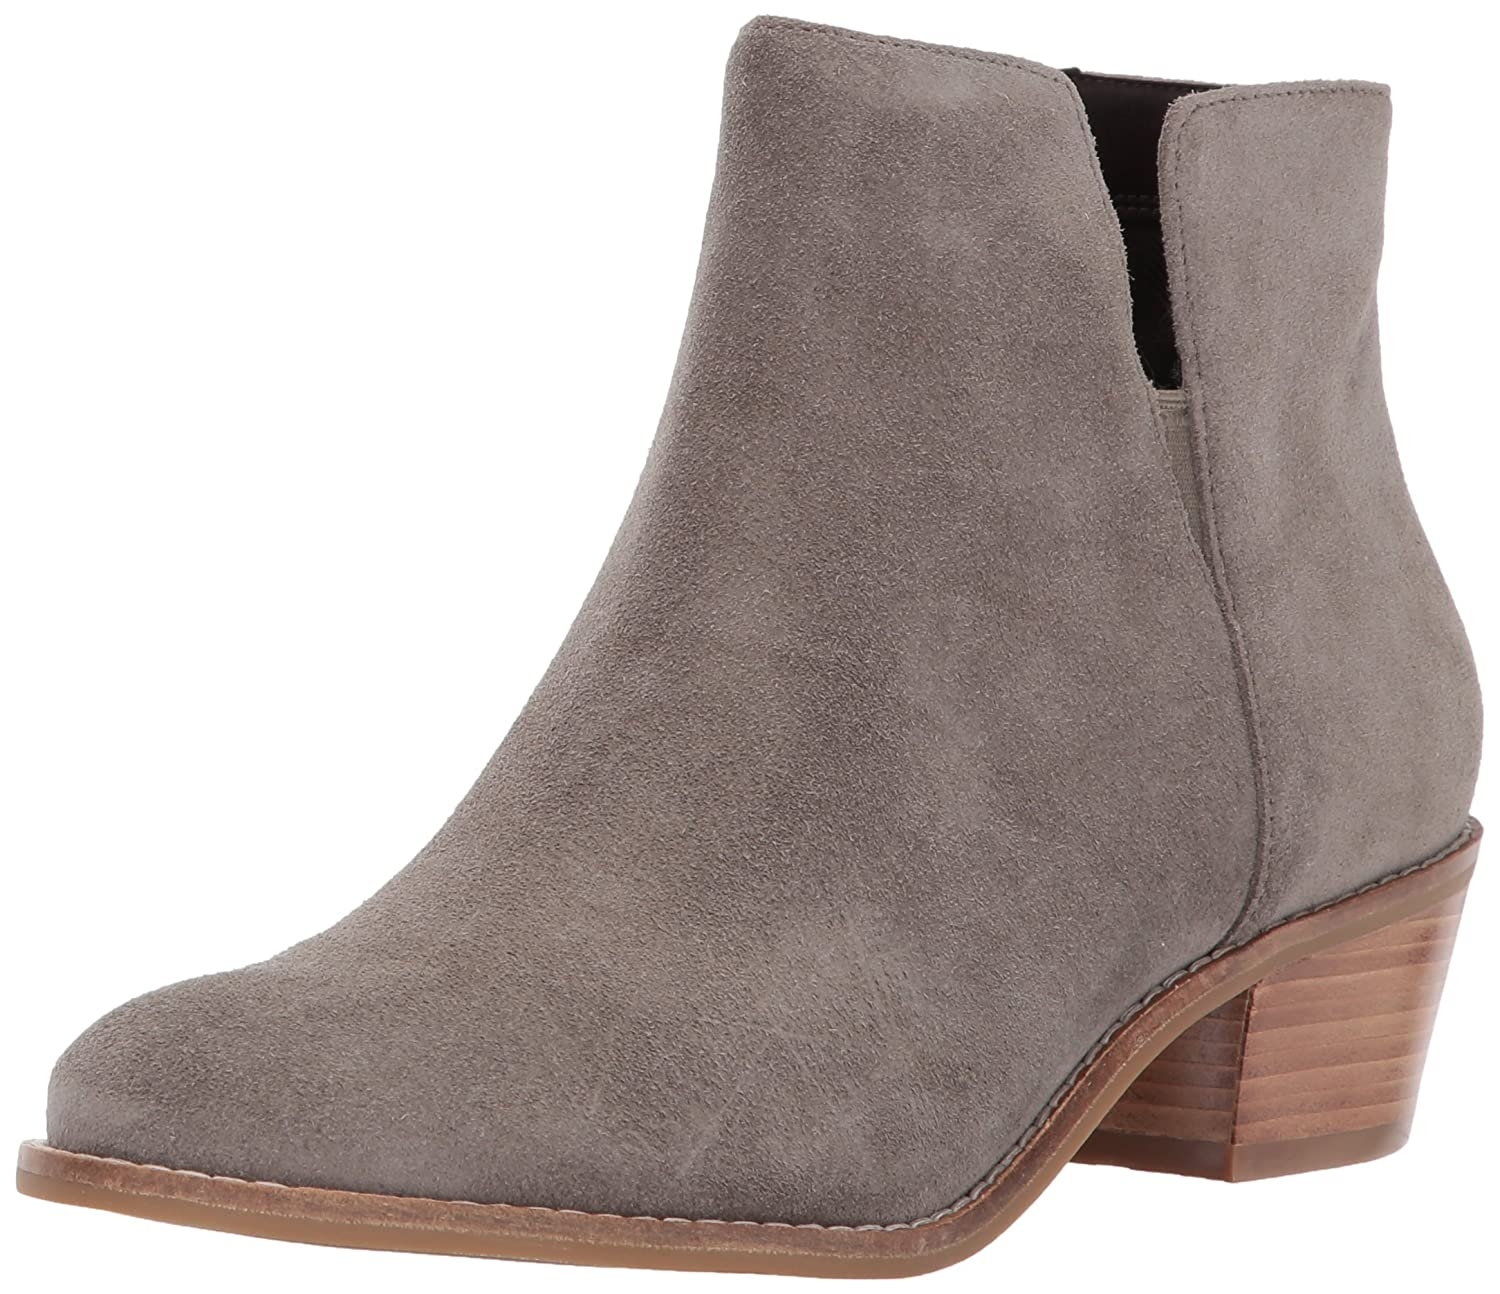 Cole Haan Women's Abbot Ankle Boot B01MSAUELE 5 C US|Morel